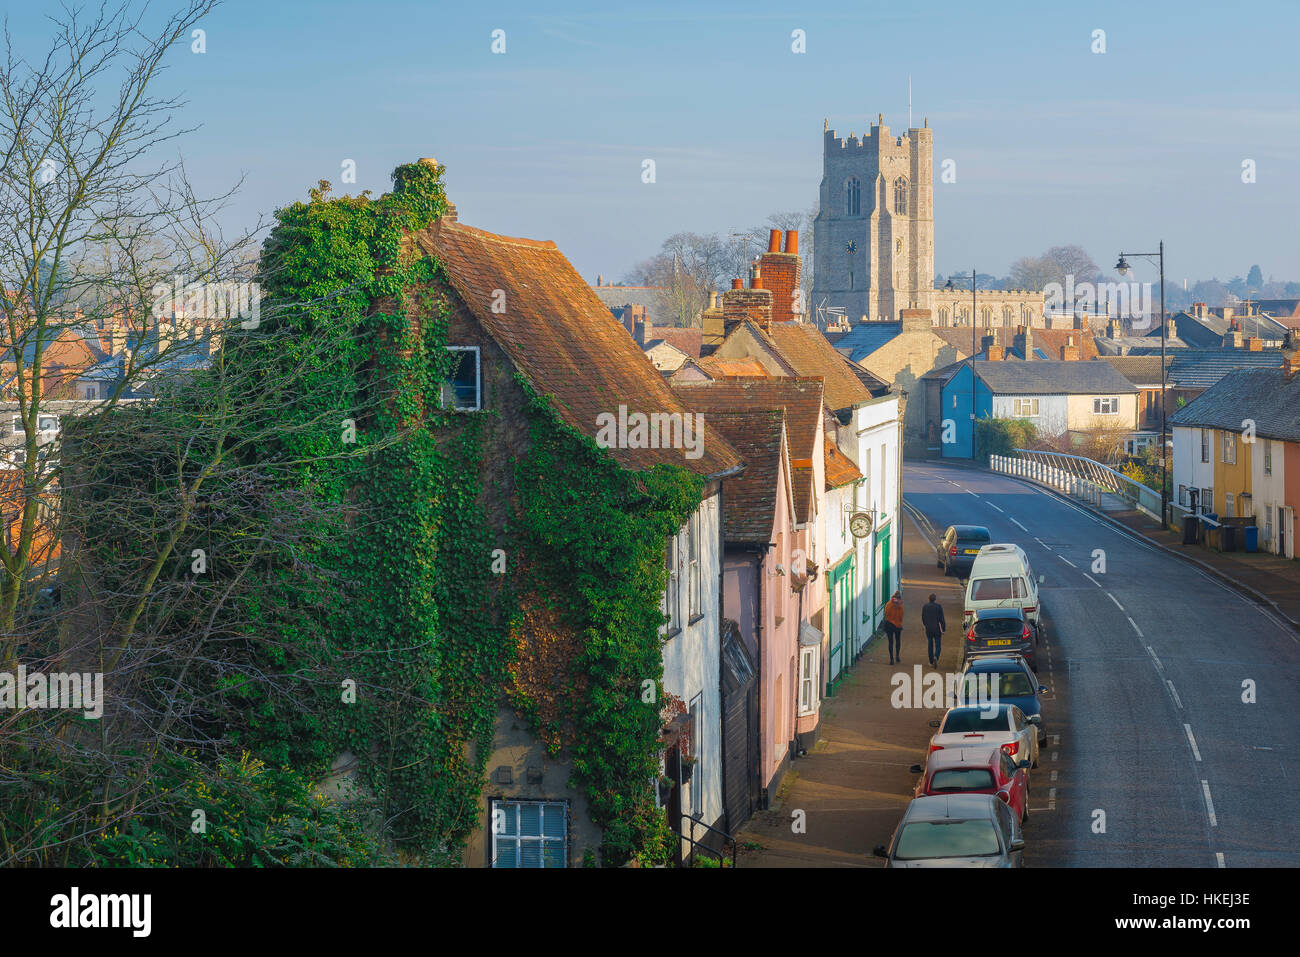 Sudbury Suffolk, a view of Ballingdon Road in the Suffolk town of Sudbury with the tower of All Saints Church on - Stock Image